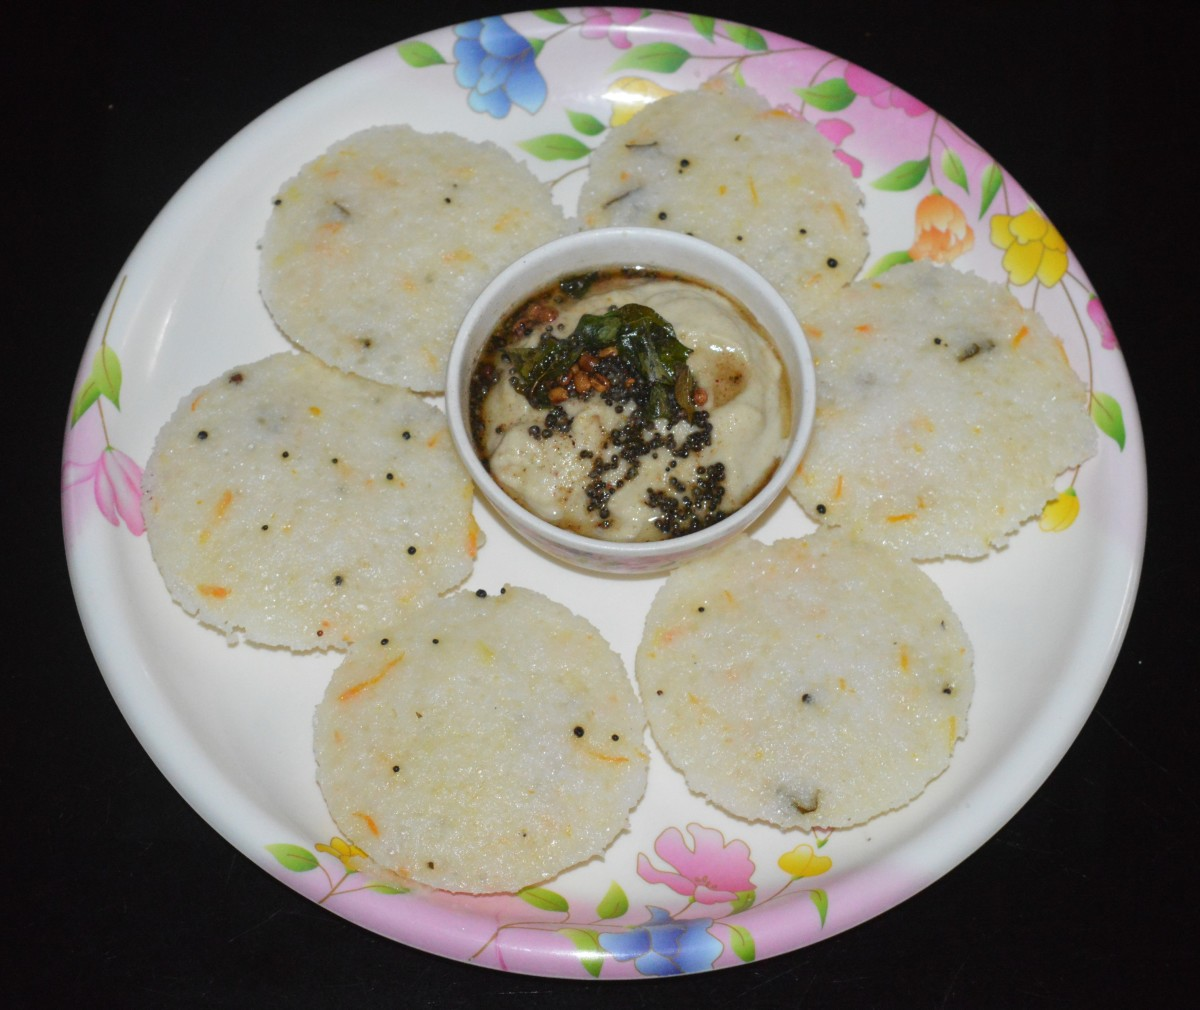 Step five: When they are not so hot, remove the idlis from the idli maker. Serve hot idlis for breakfast with coconut chutney, sambar, or any other chutney. Enjoy the taste. They make a delightful breakfast!